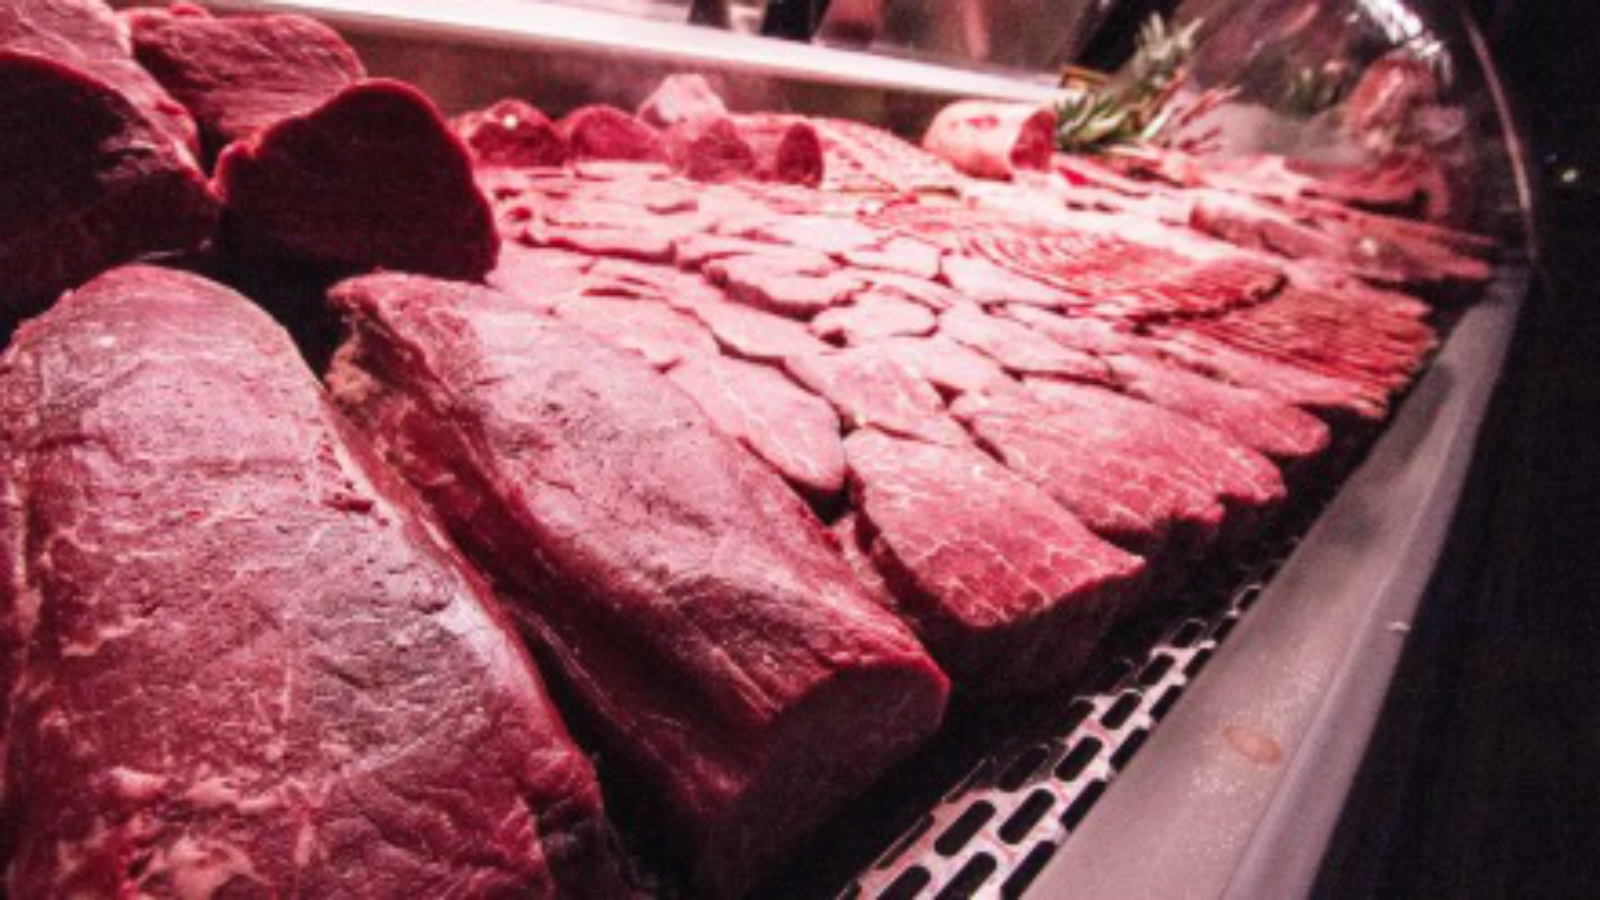 Changing your meat-eating habits could mean a longer life